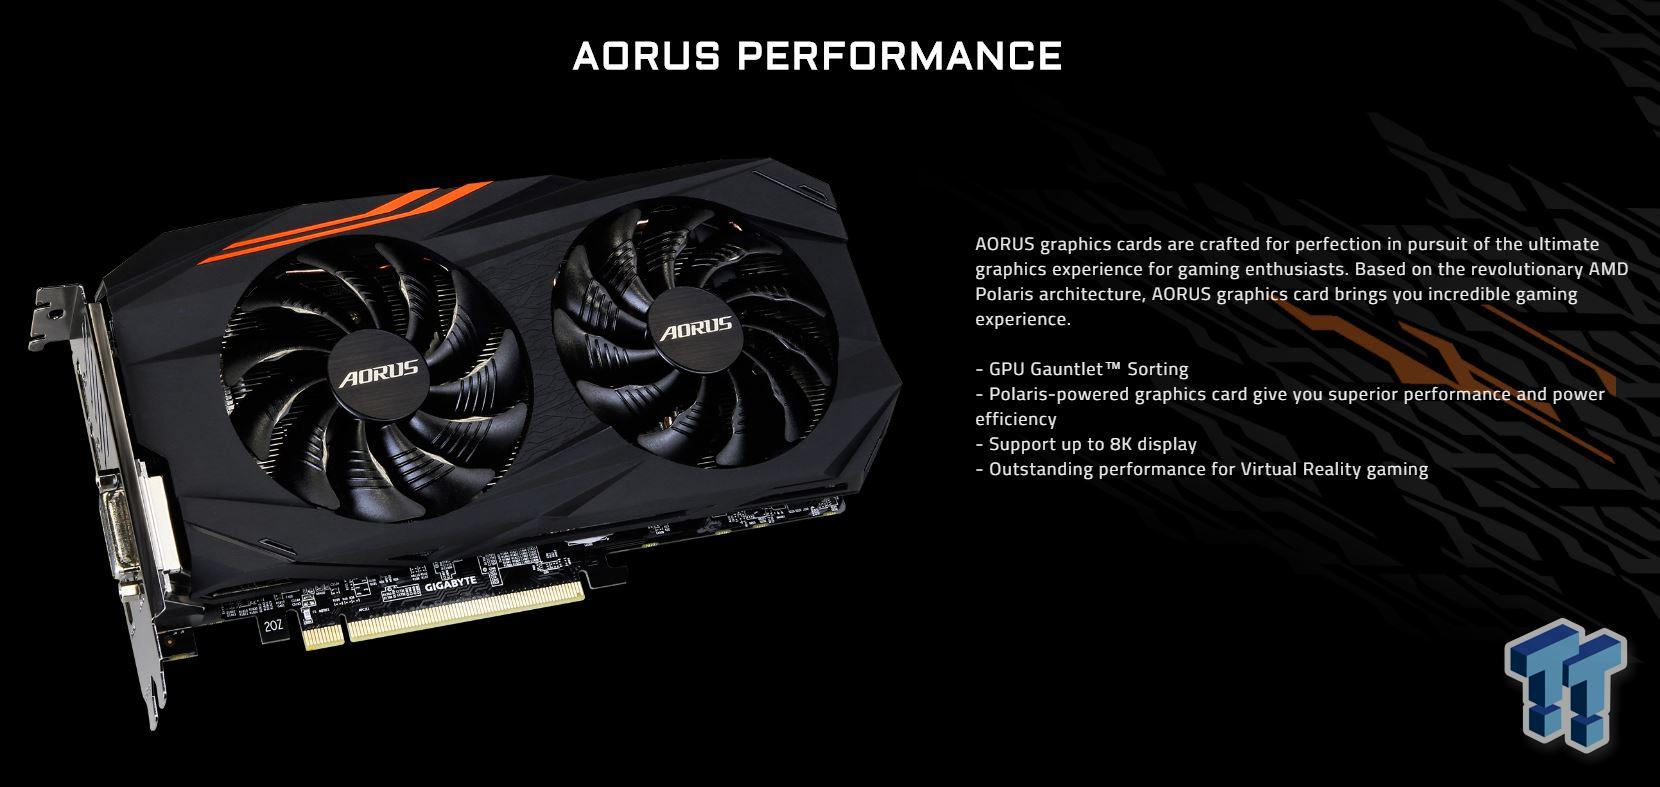 AORUS RX 570 4GB Graphics Card Review - Mid Range Champ?